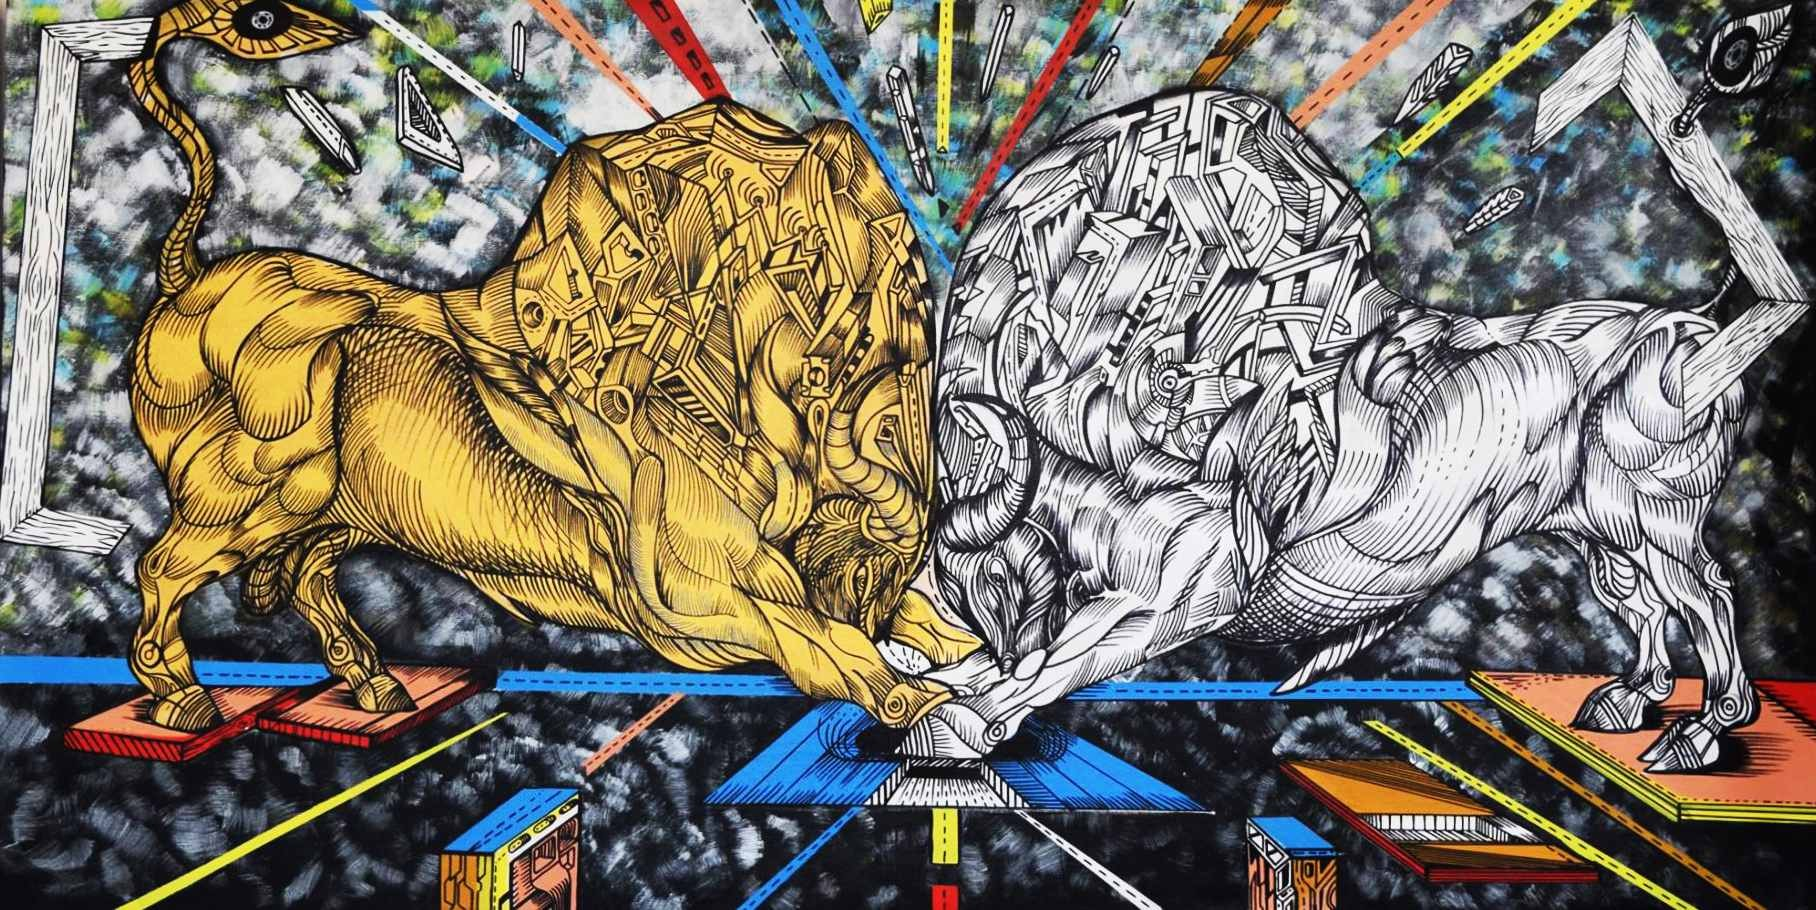 Silver versus Gold is a bullfight painting in acrylic.